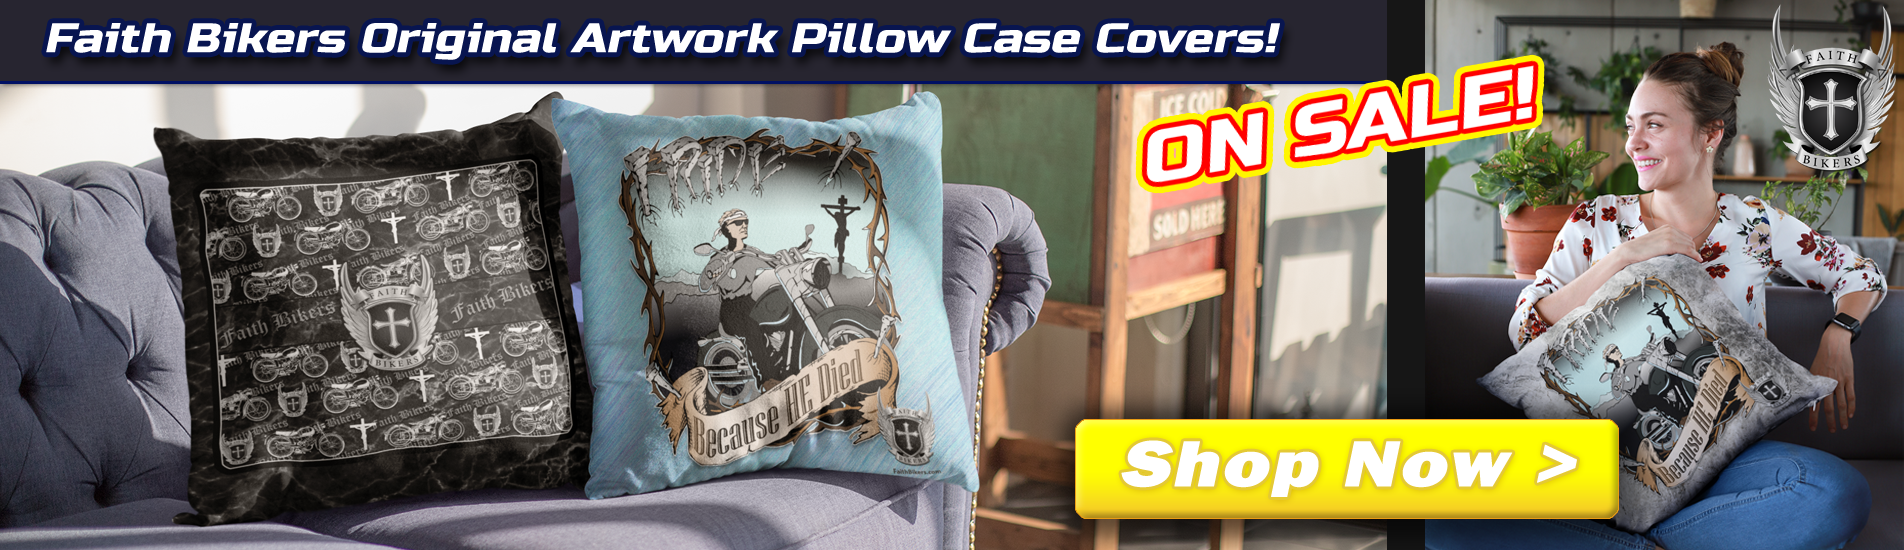 Pillow Case Sale!